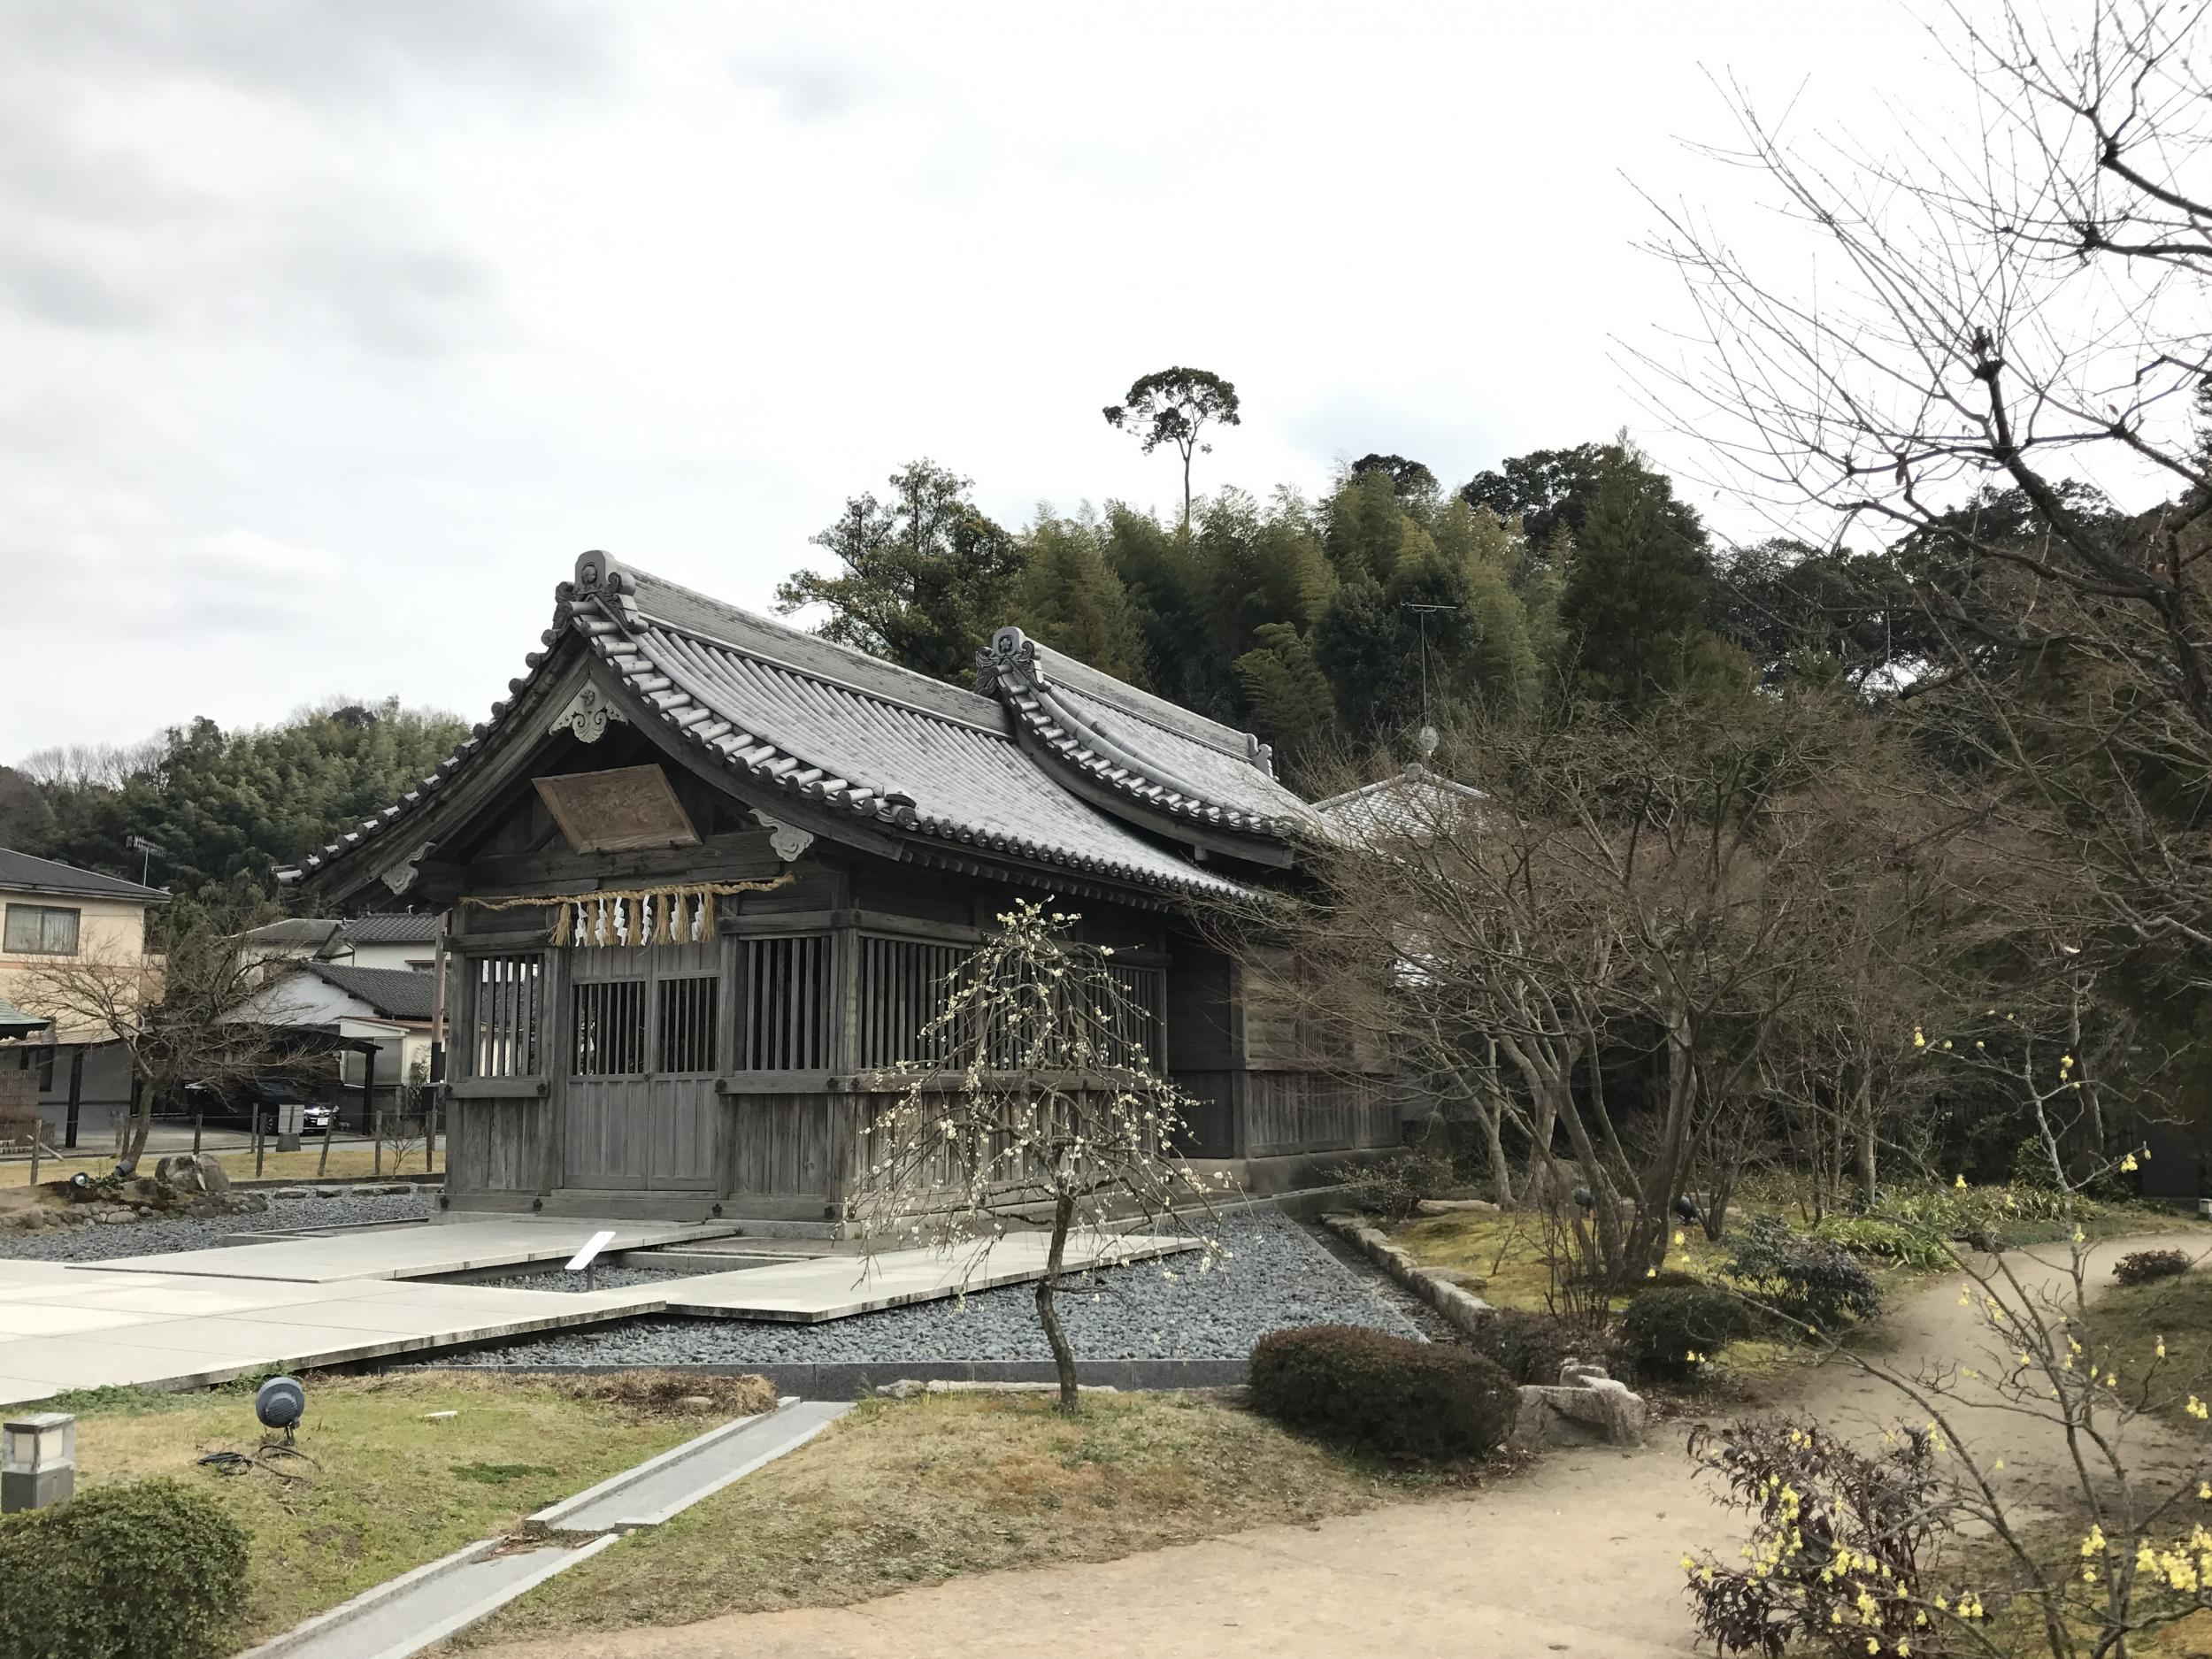 Kyushu: Why tourists should forget Honshu and visit this underrated Japanese island instead